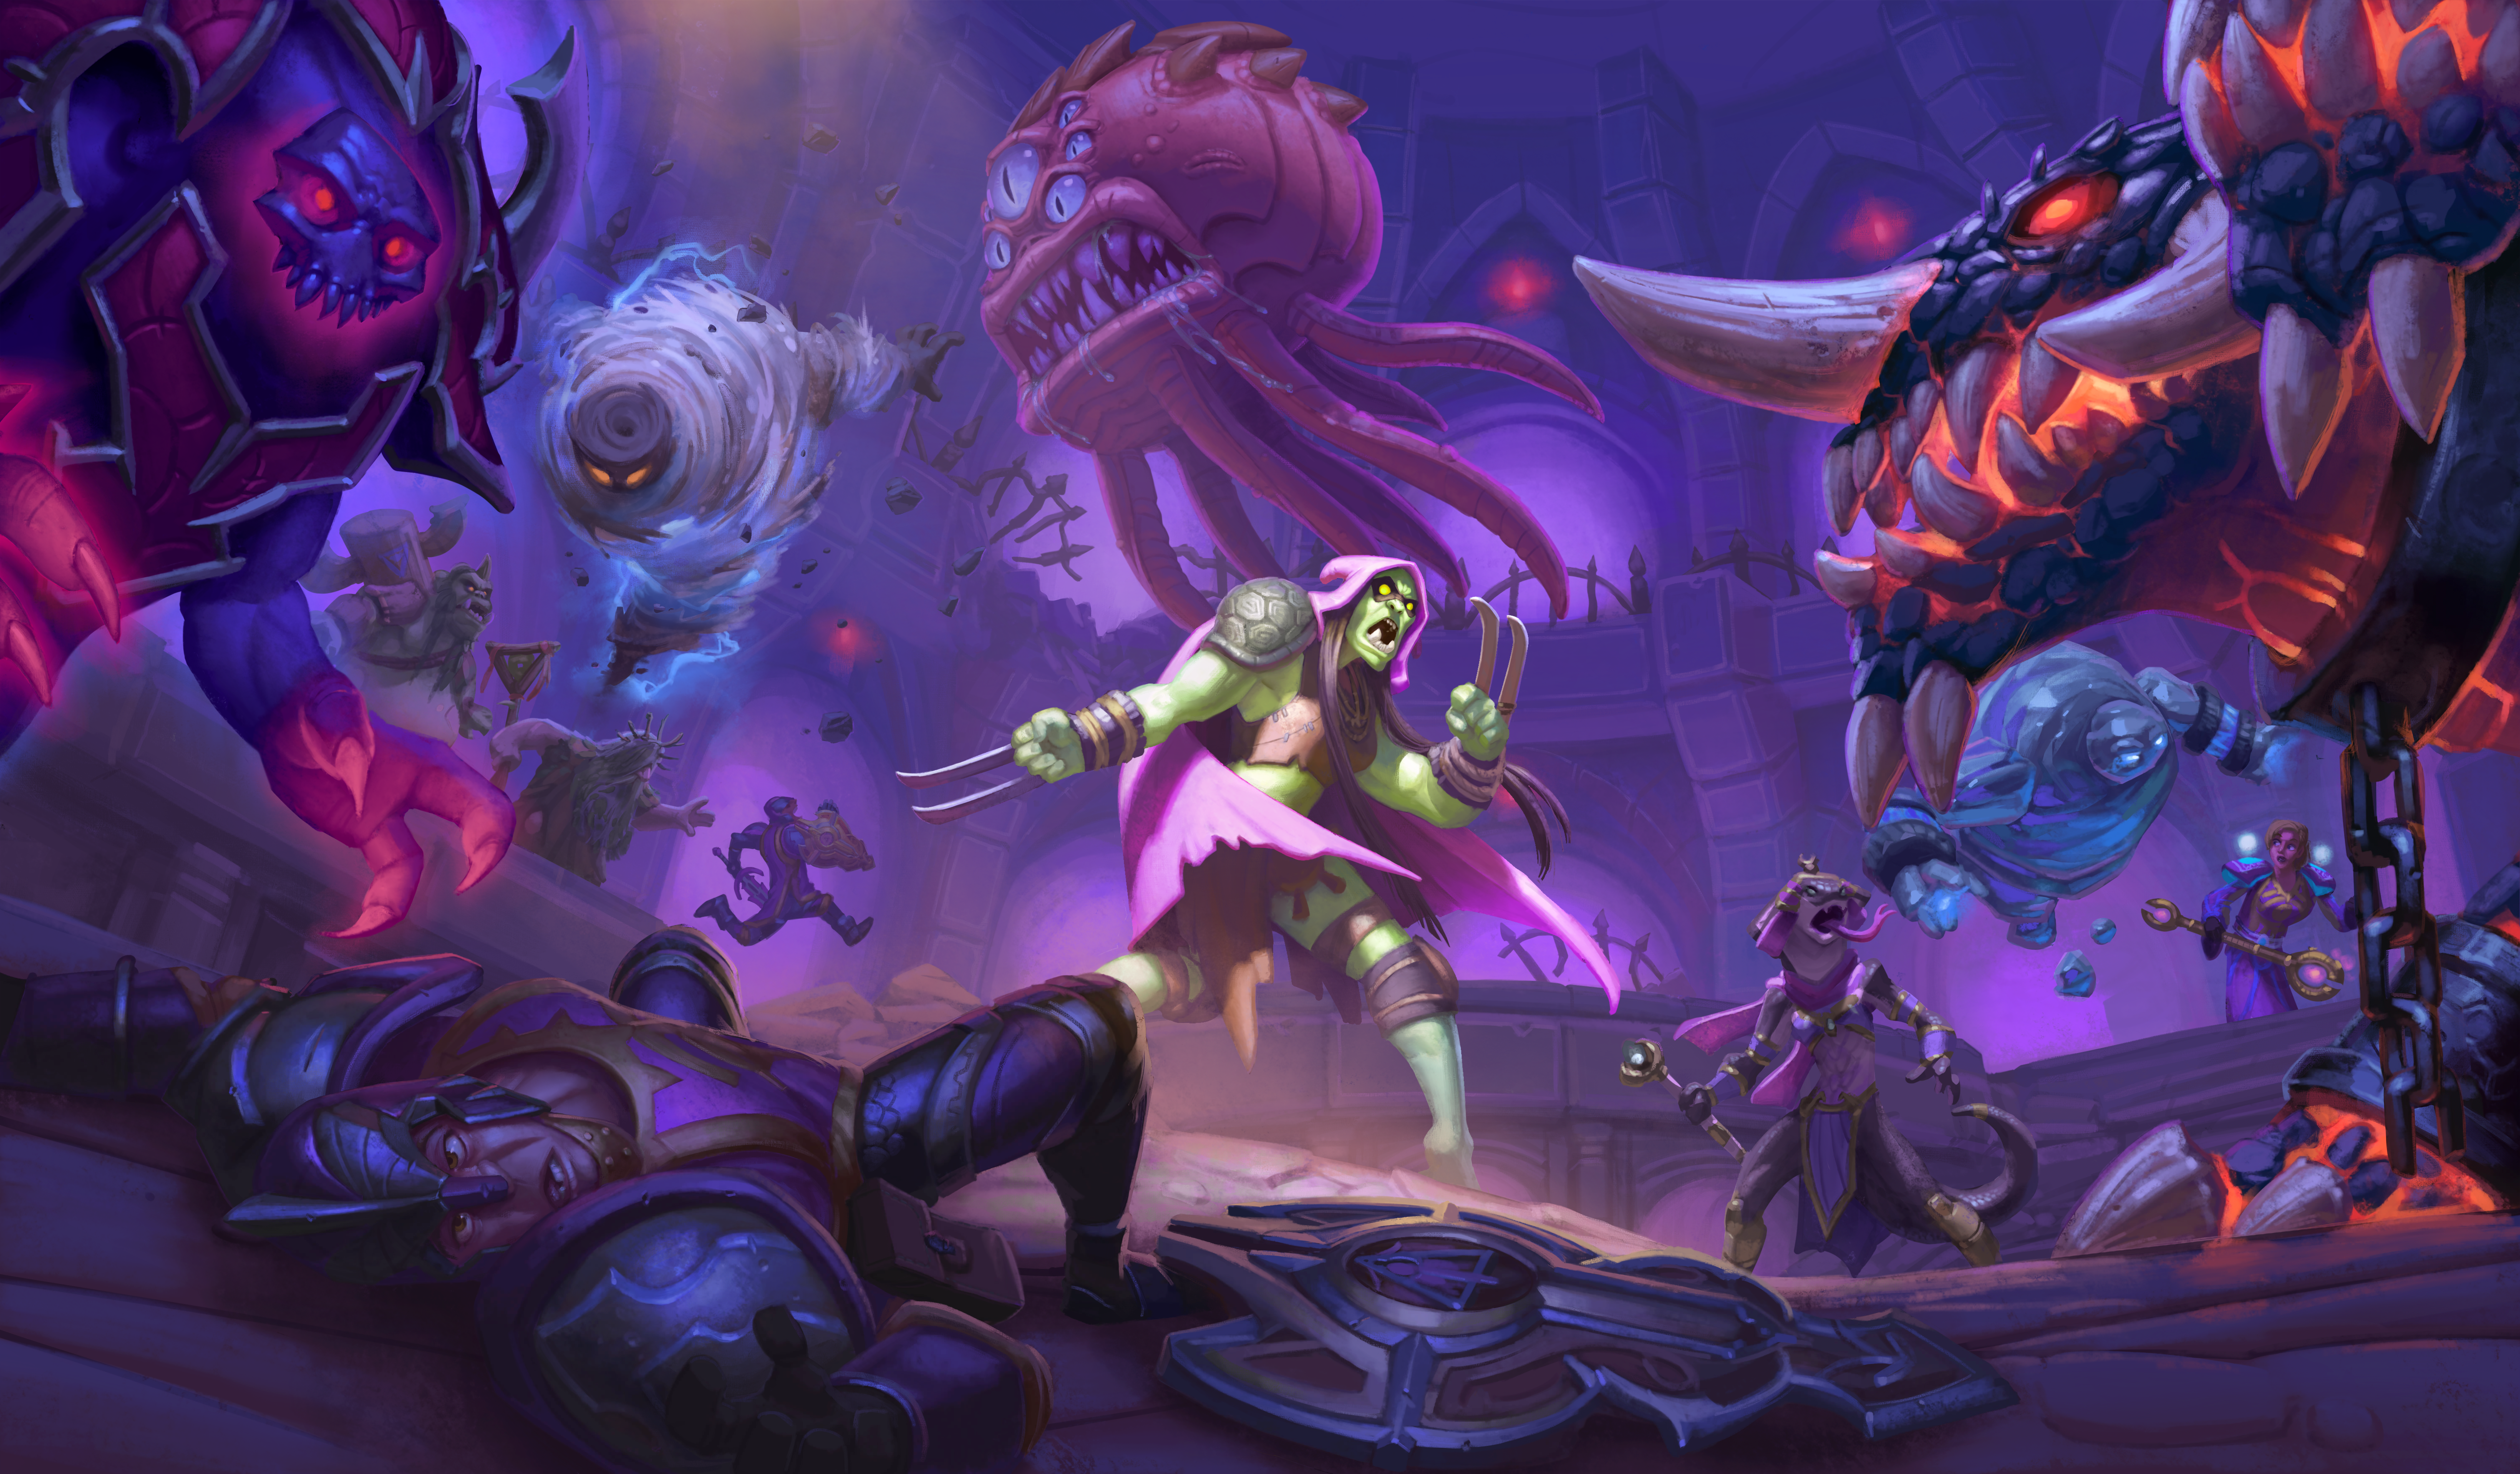 Hearthstone's single-player content saved the game for me